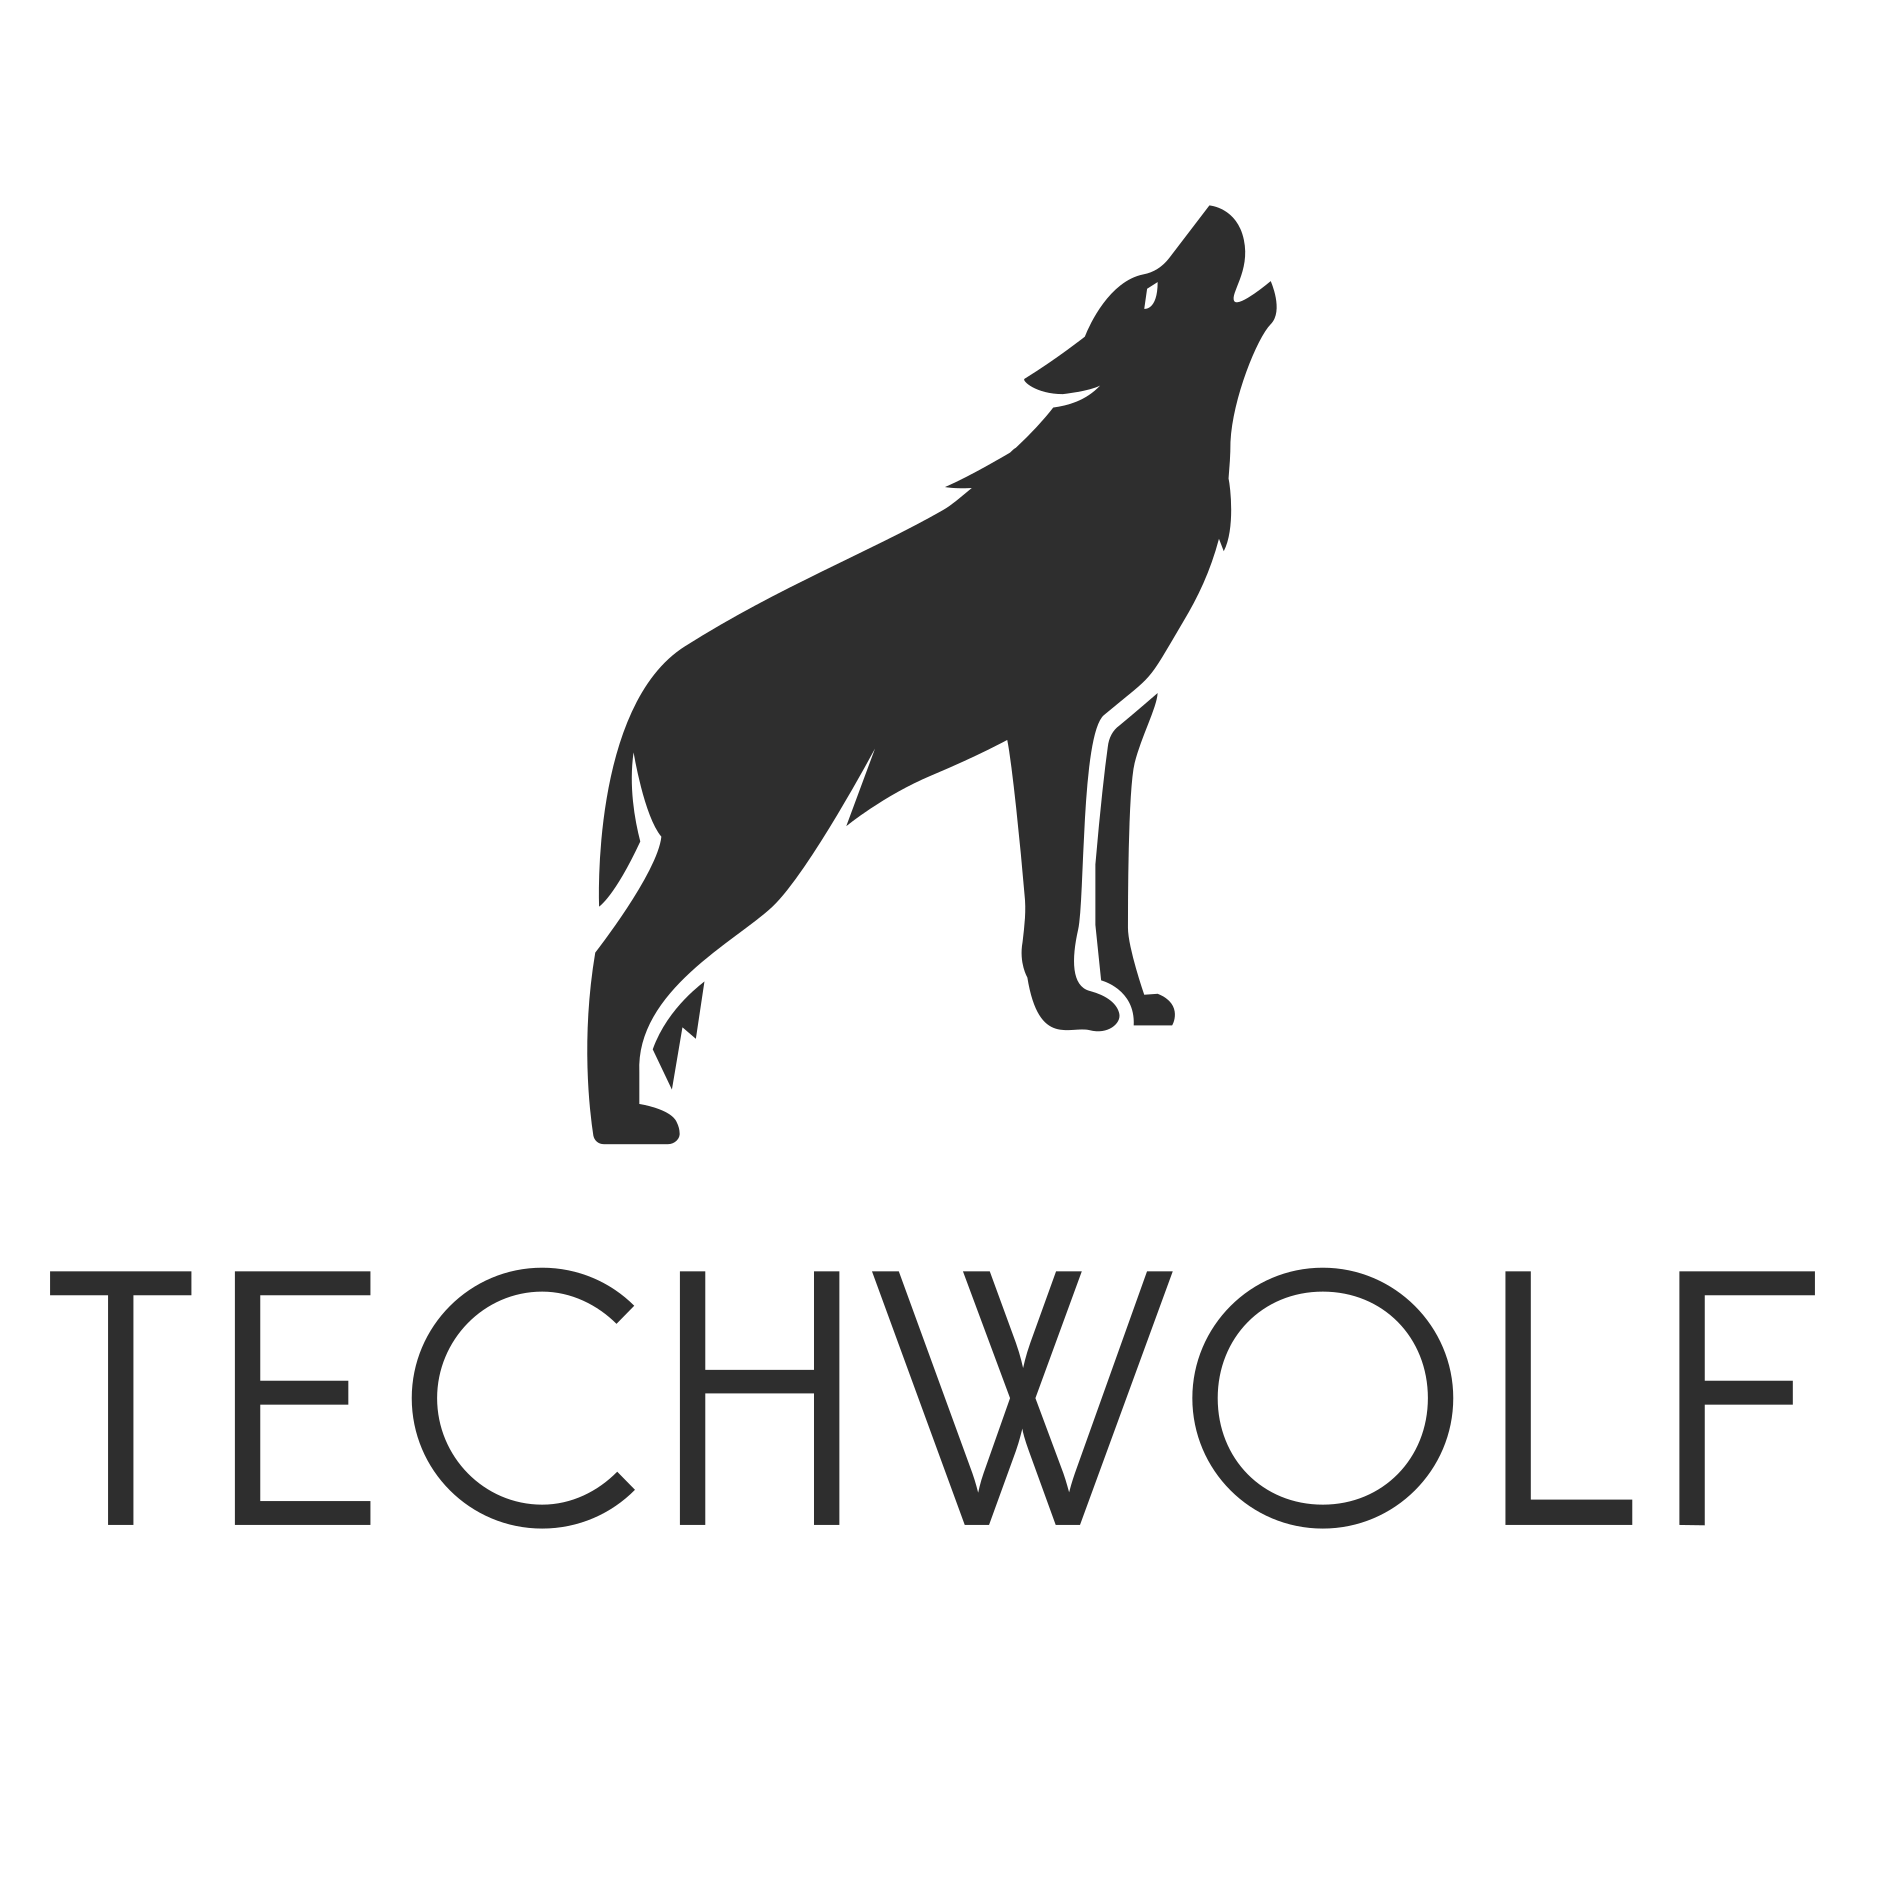 Logo start-up TechWolf